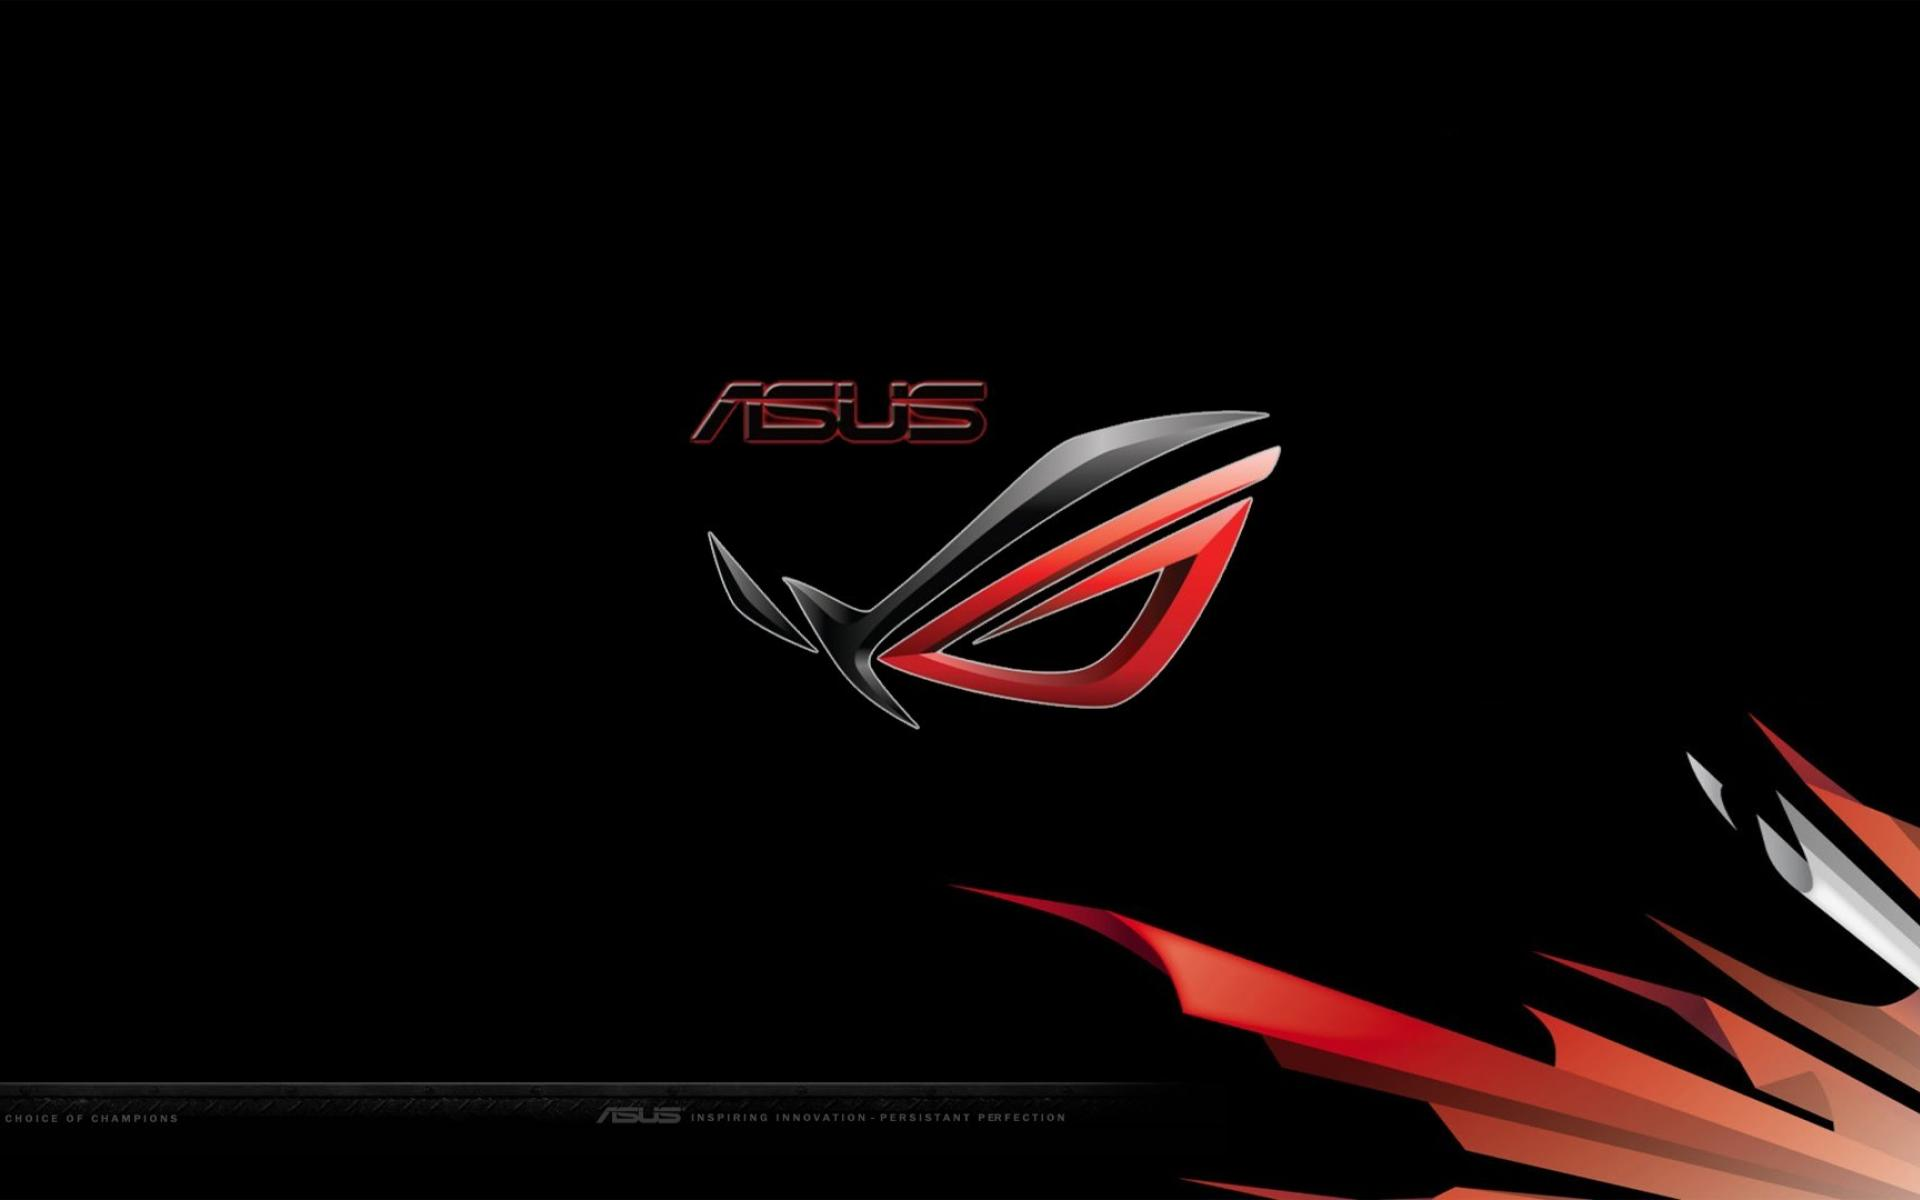 asus official wallpapers - photo #28